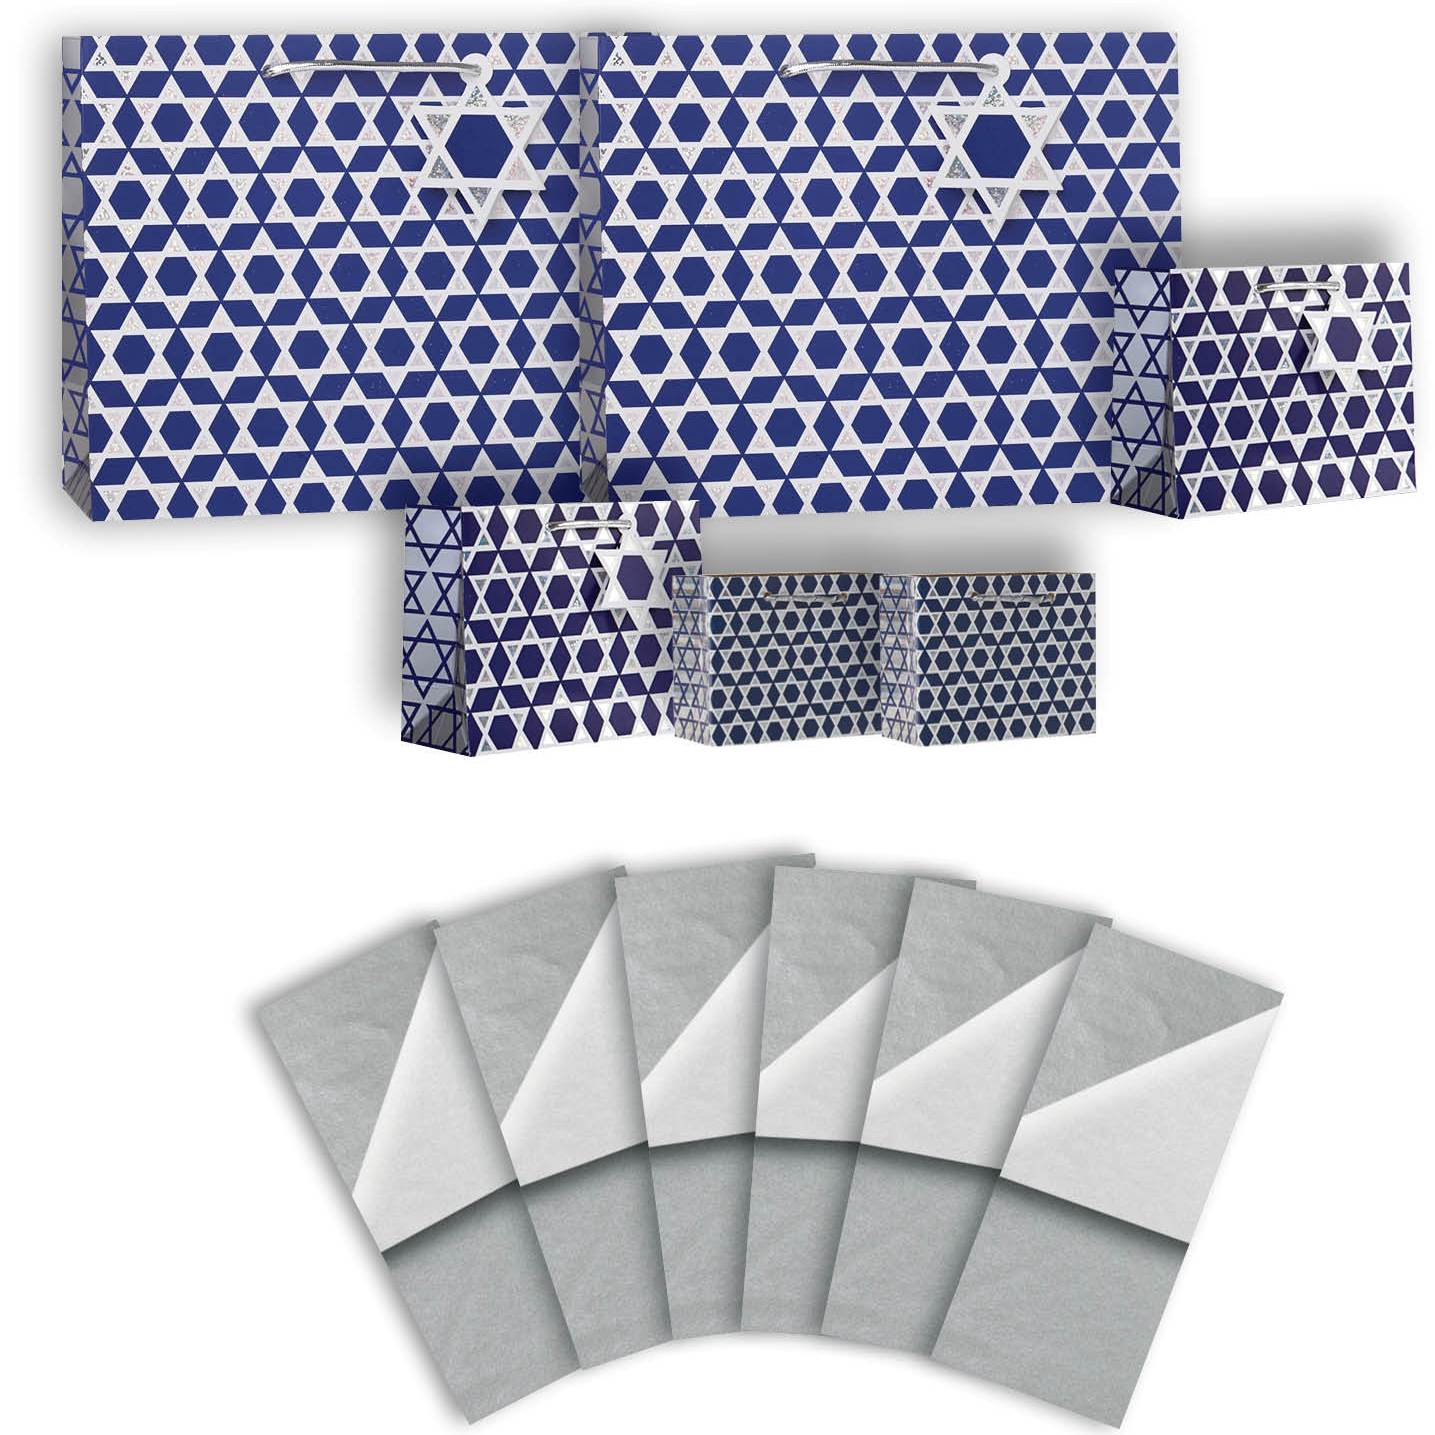 Jillson & Roberts Gift Bag & Tissue Assortment, Hanukkah Shield of David (6 Bags)